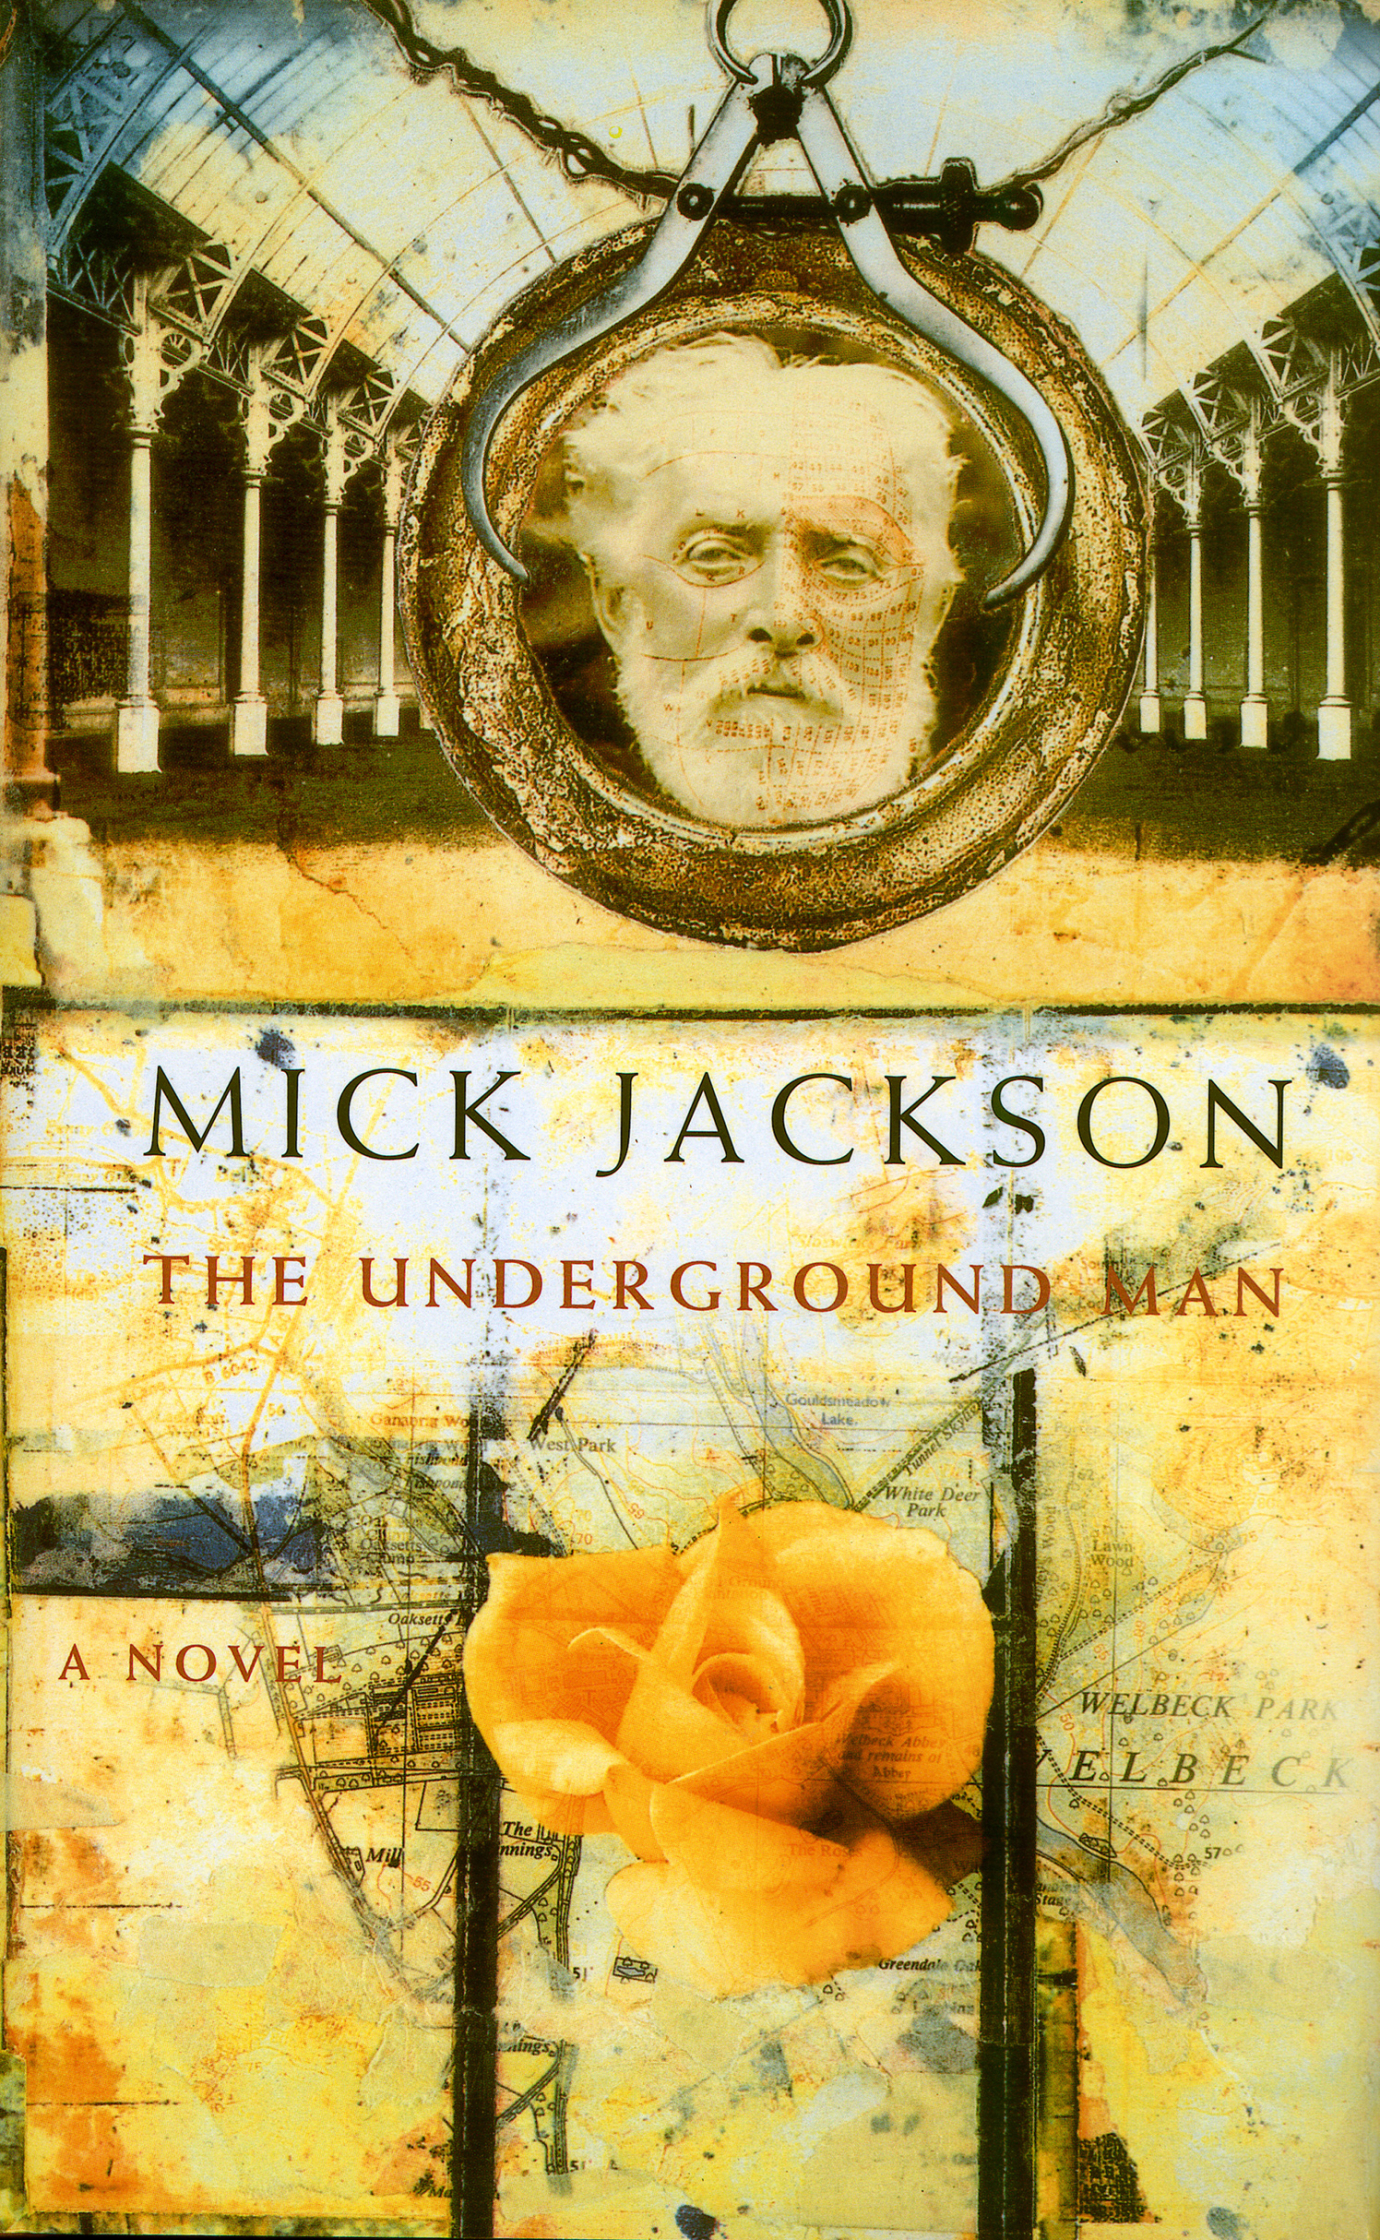 The Underground Man Book Cover / Macmillan